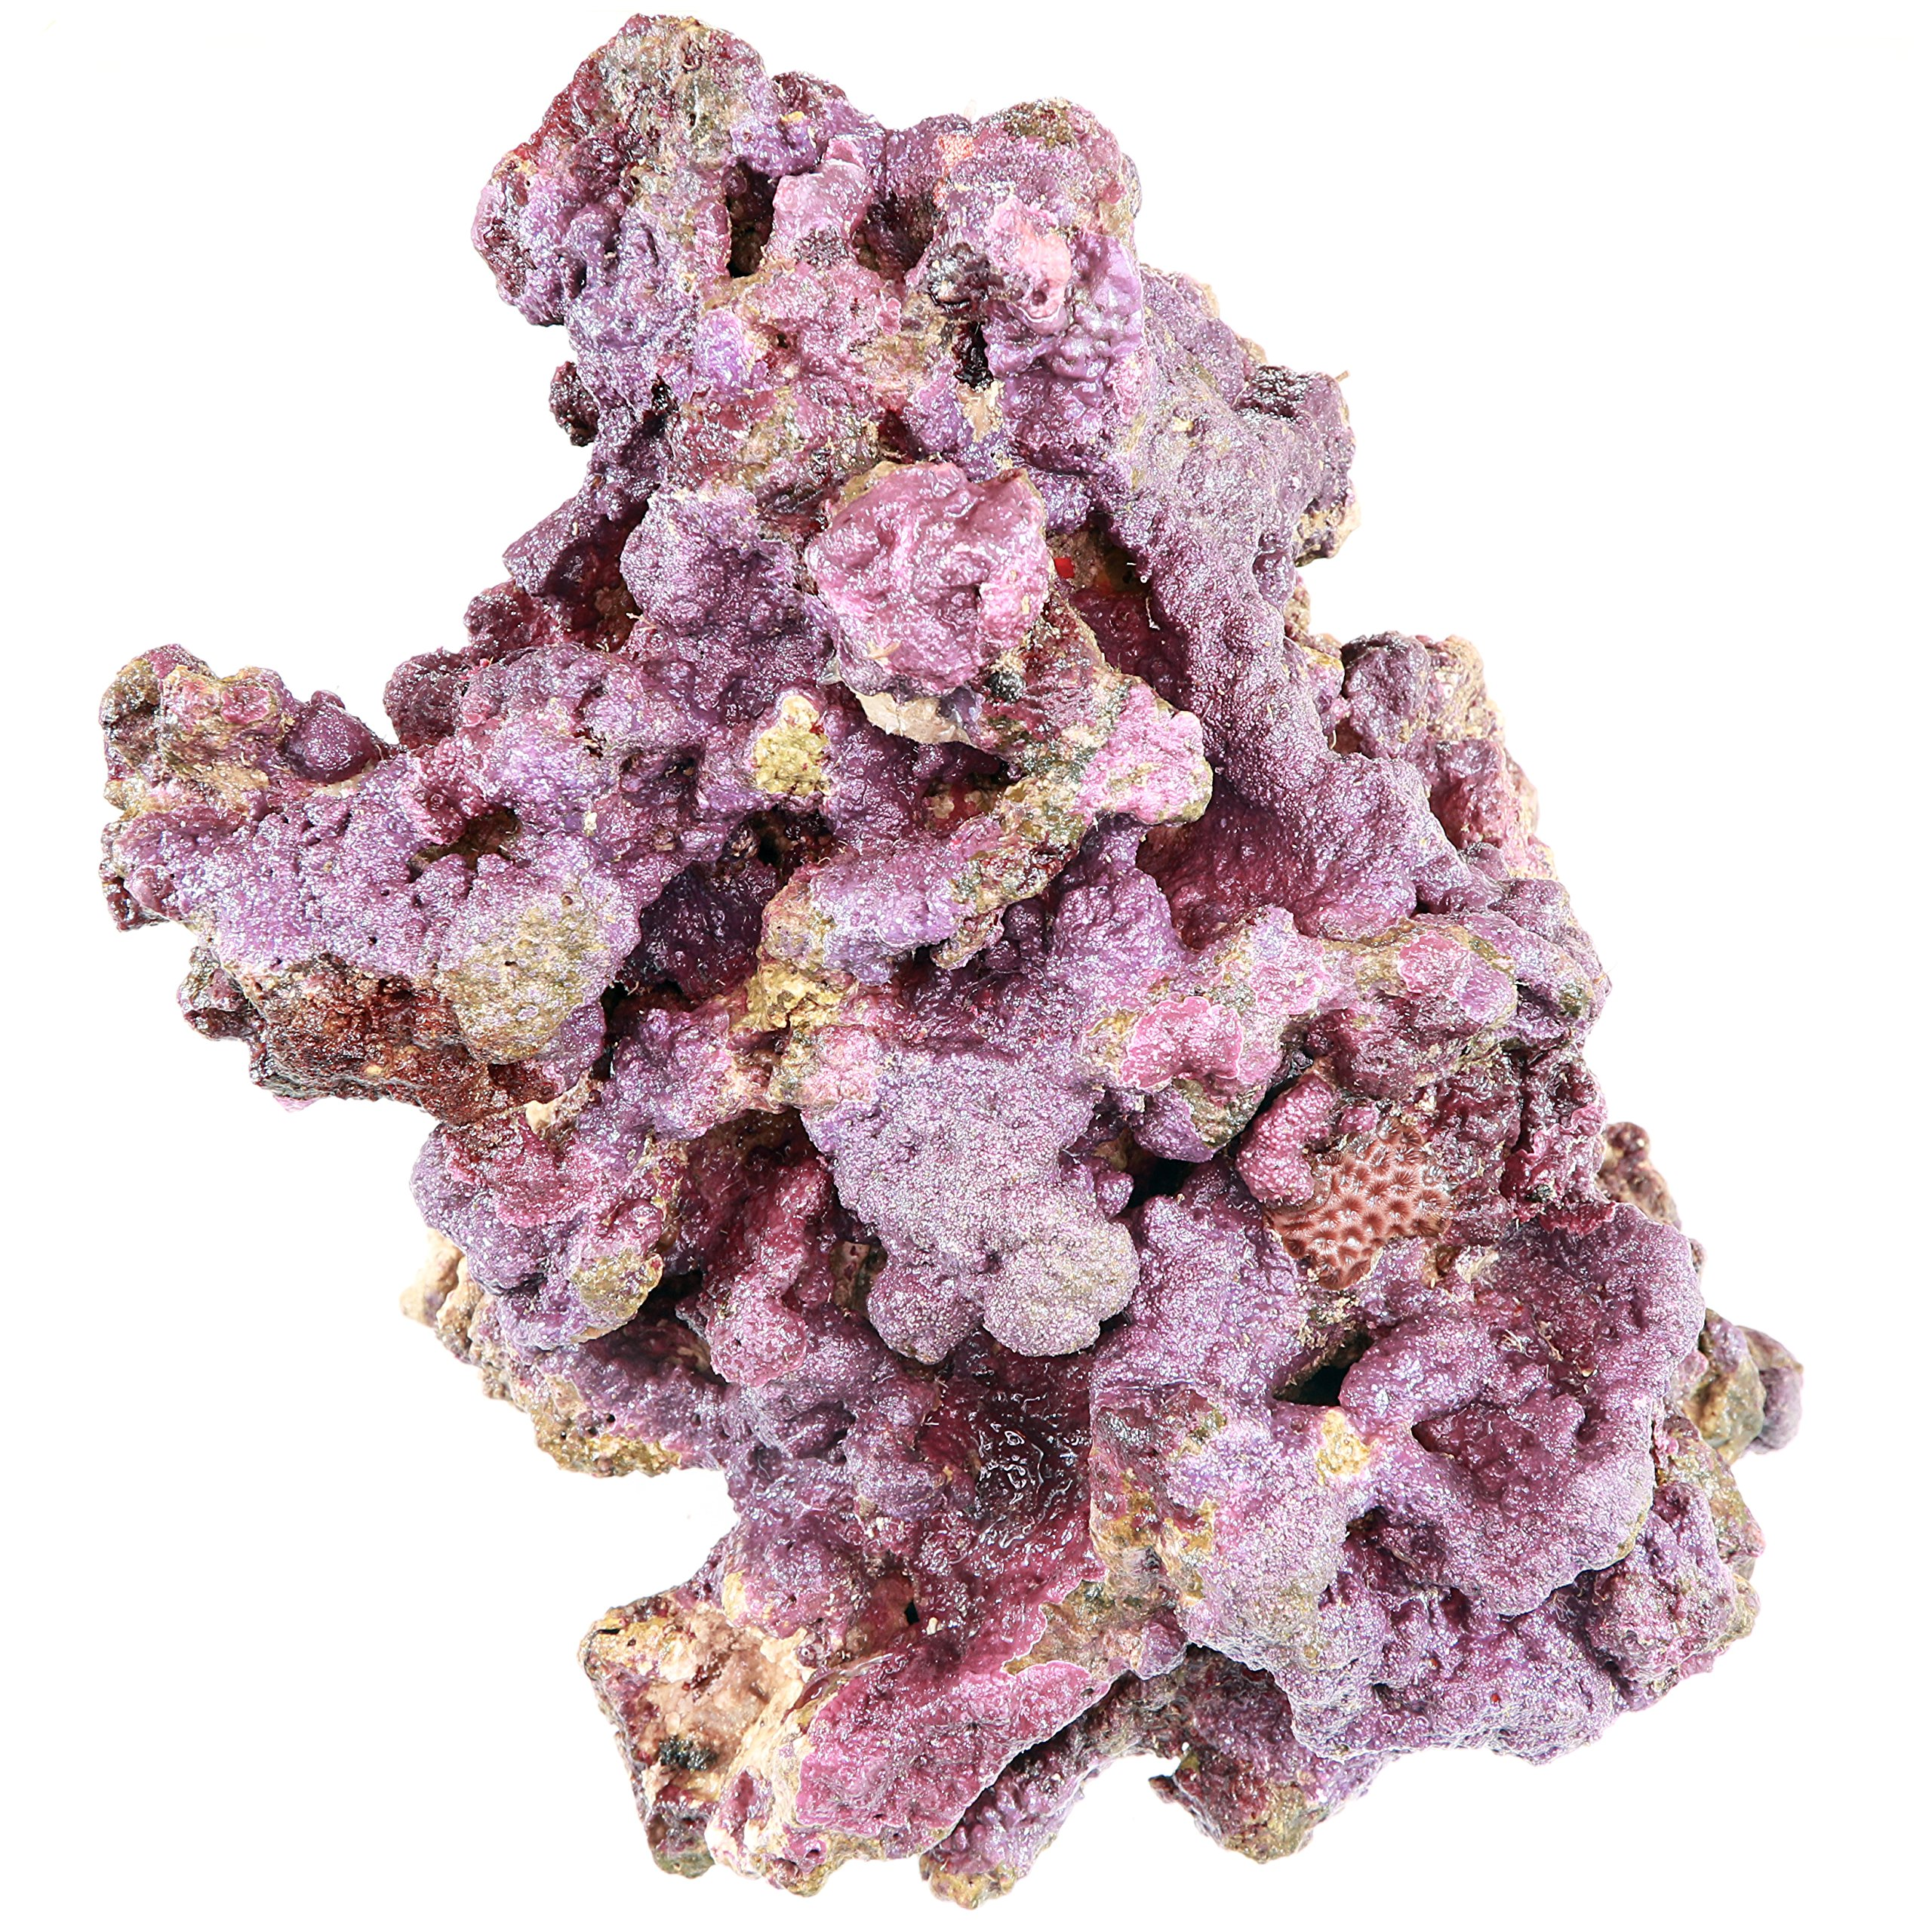 ARC Reef Premium Live Rock for Saltwater Aquariums, 45 lbs.